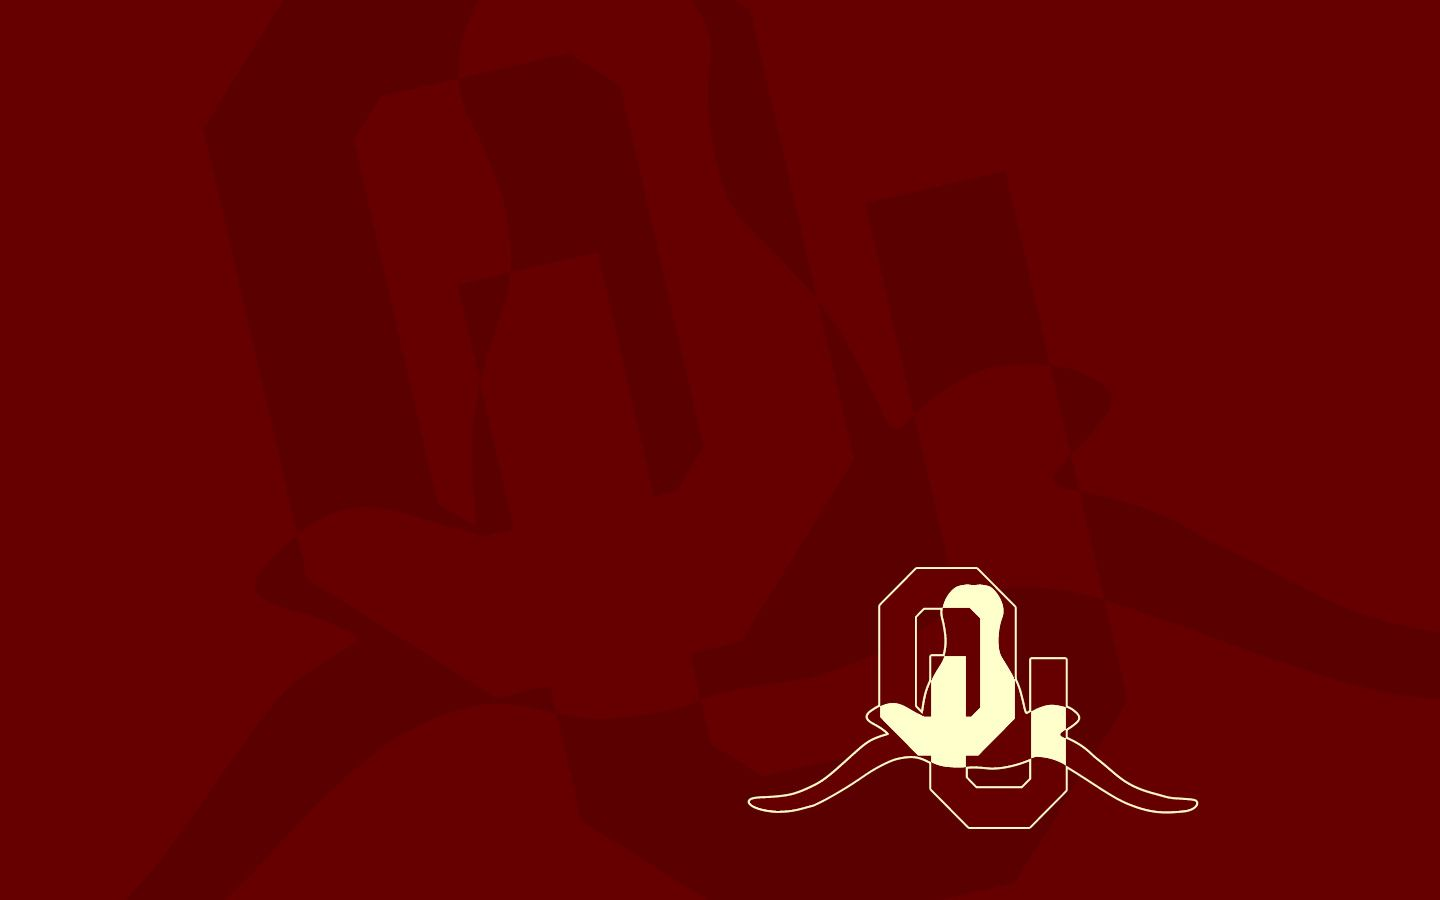 Soonerland Image By Nicole Hilliard Wallpaper Arbuckle